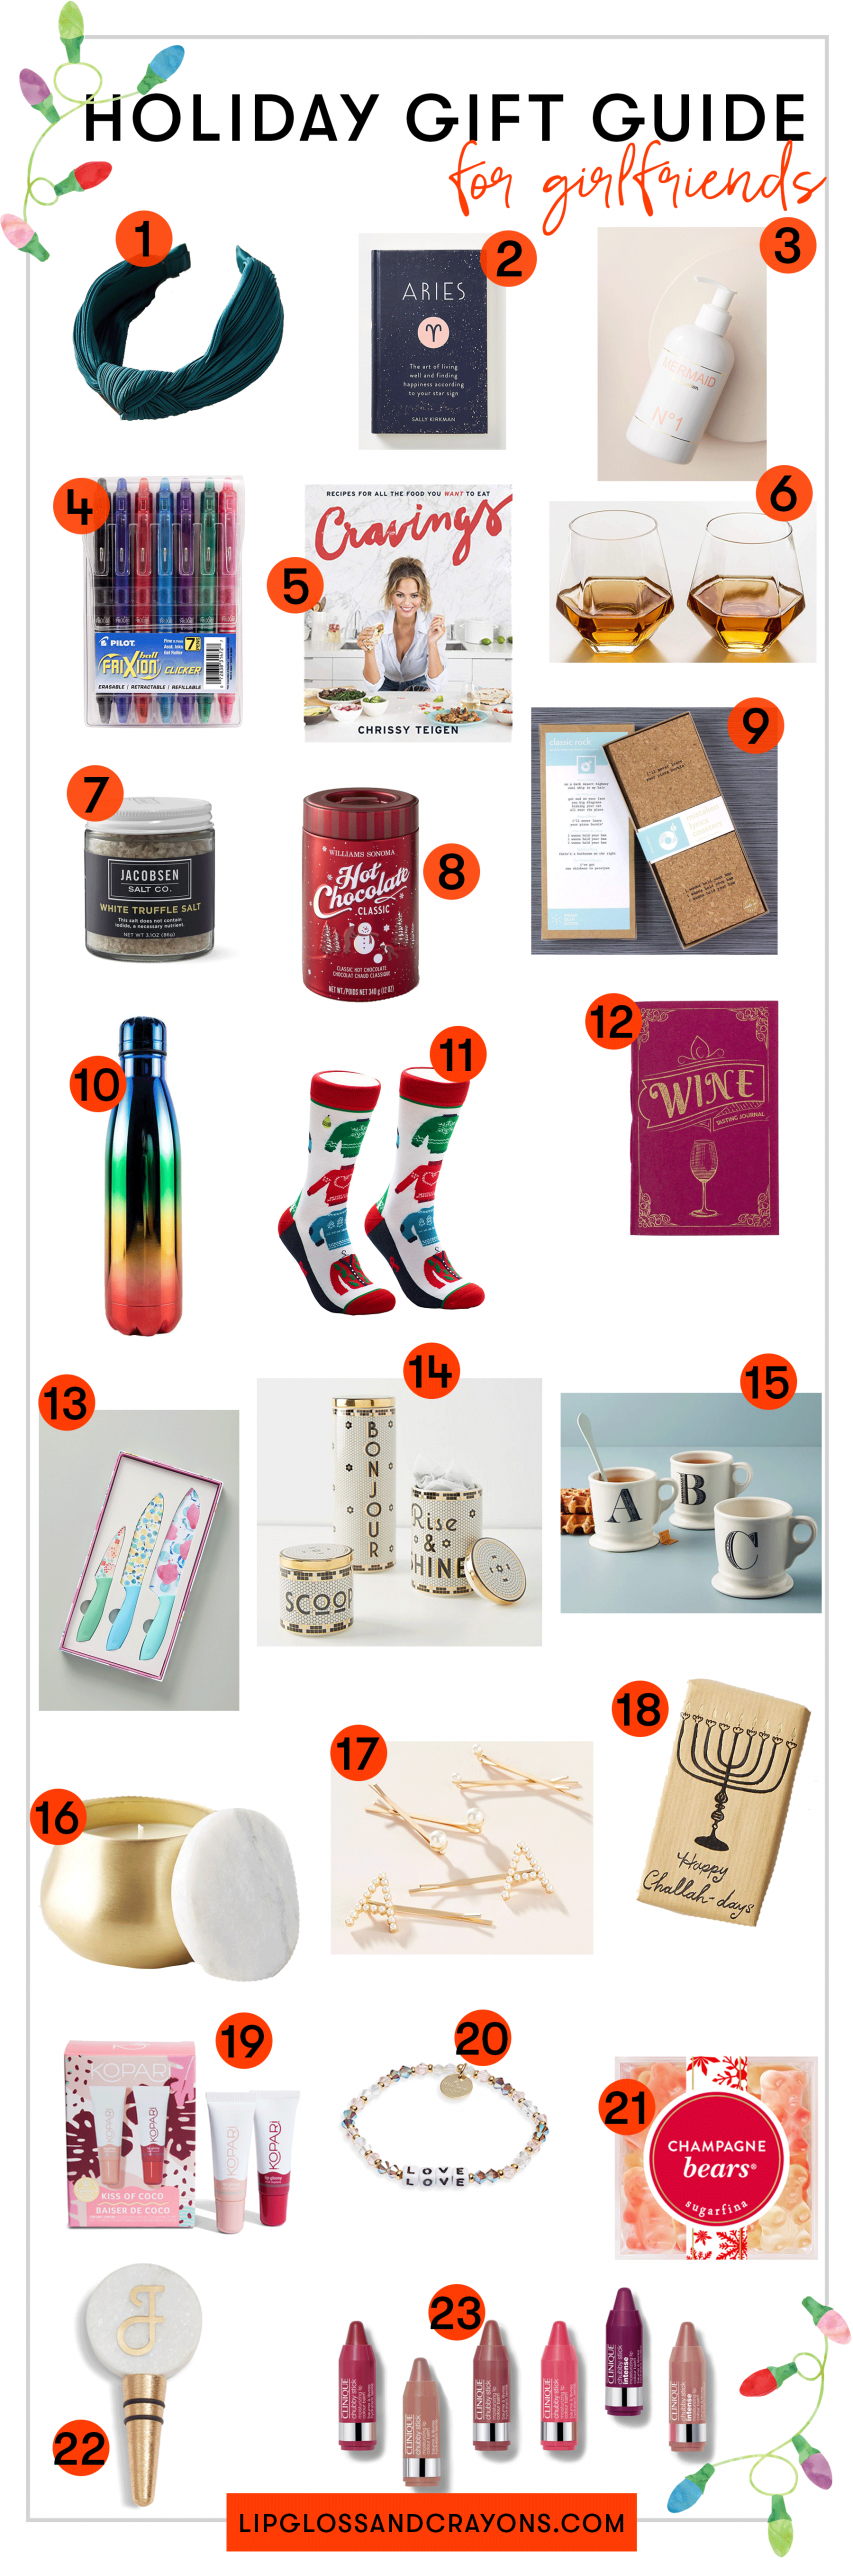 Looking for the perfect gift for the girl who has everything? This gift guide is filled with items for your coworker, your happy hour buddy, your very best girlfriends (and they're all under $25)!